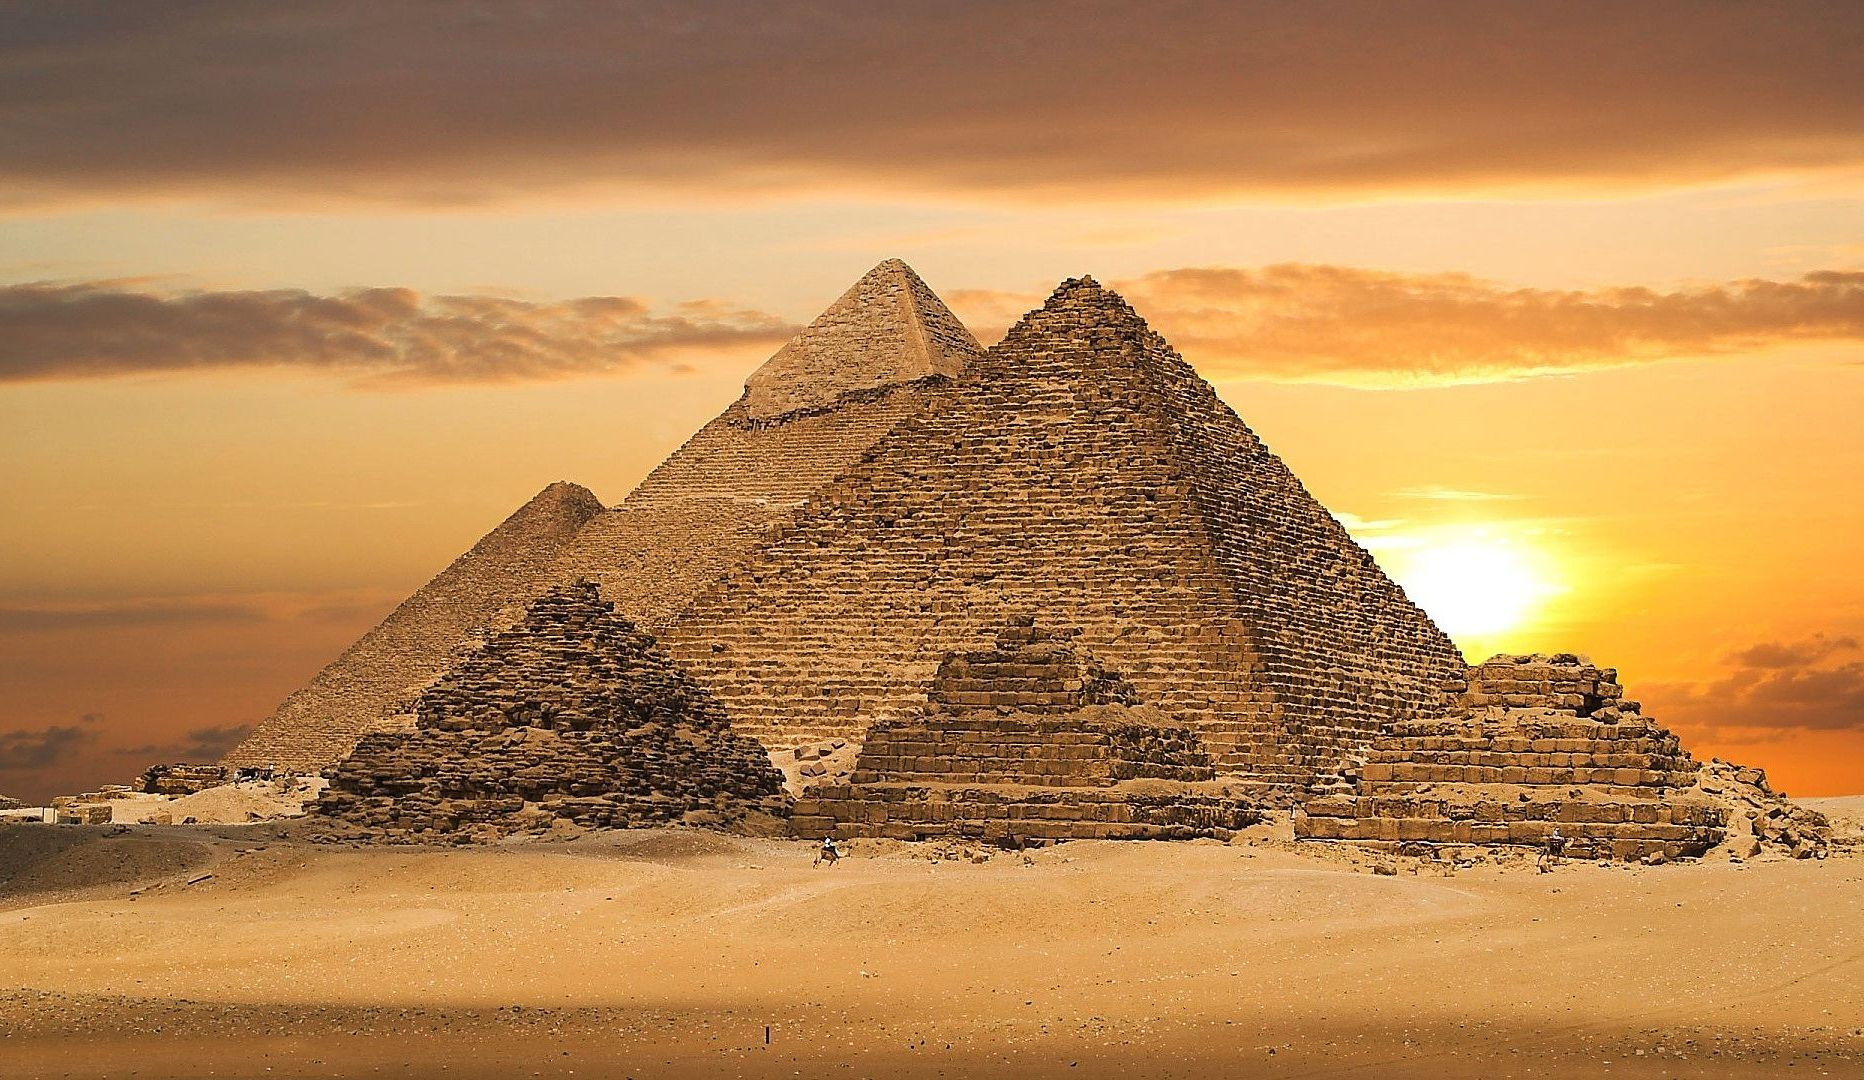 Pyramids | HQFX Wallpapers, Pics